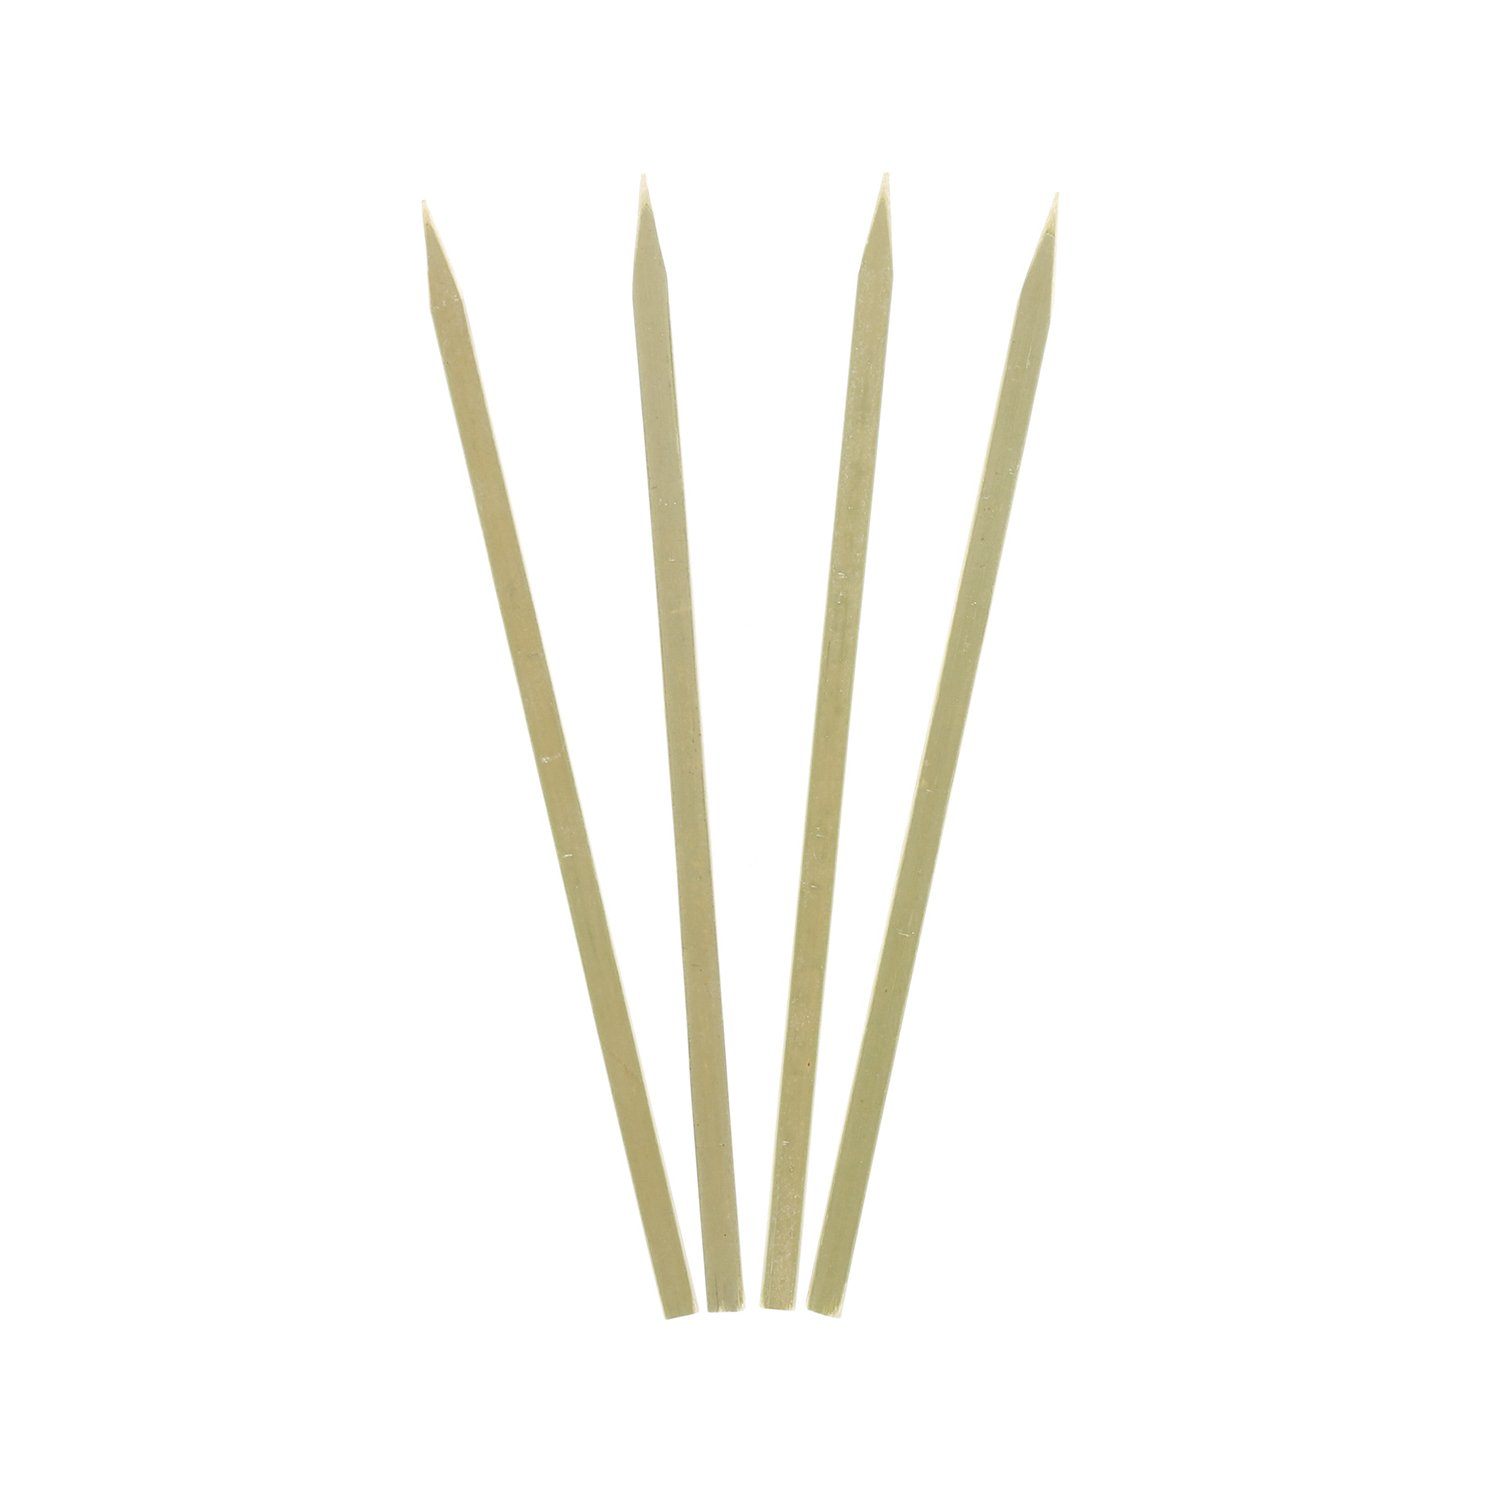 Royal Bamboo 7'' Flat Skewers for Grilling, Satay, and Skewered Vegetables, Case of 3,000